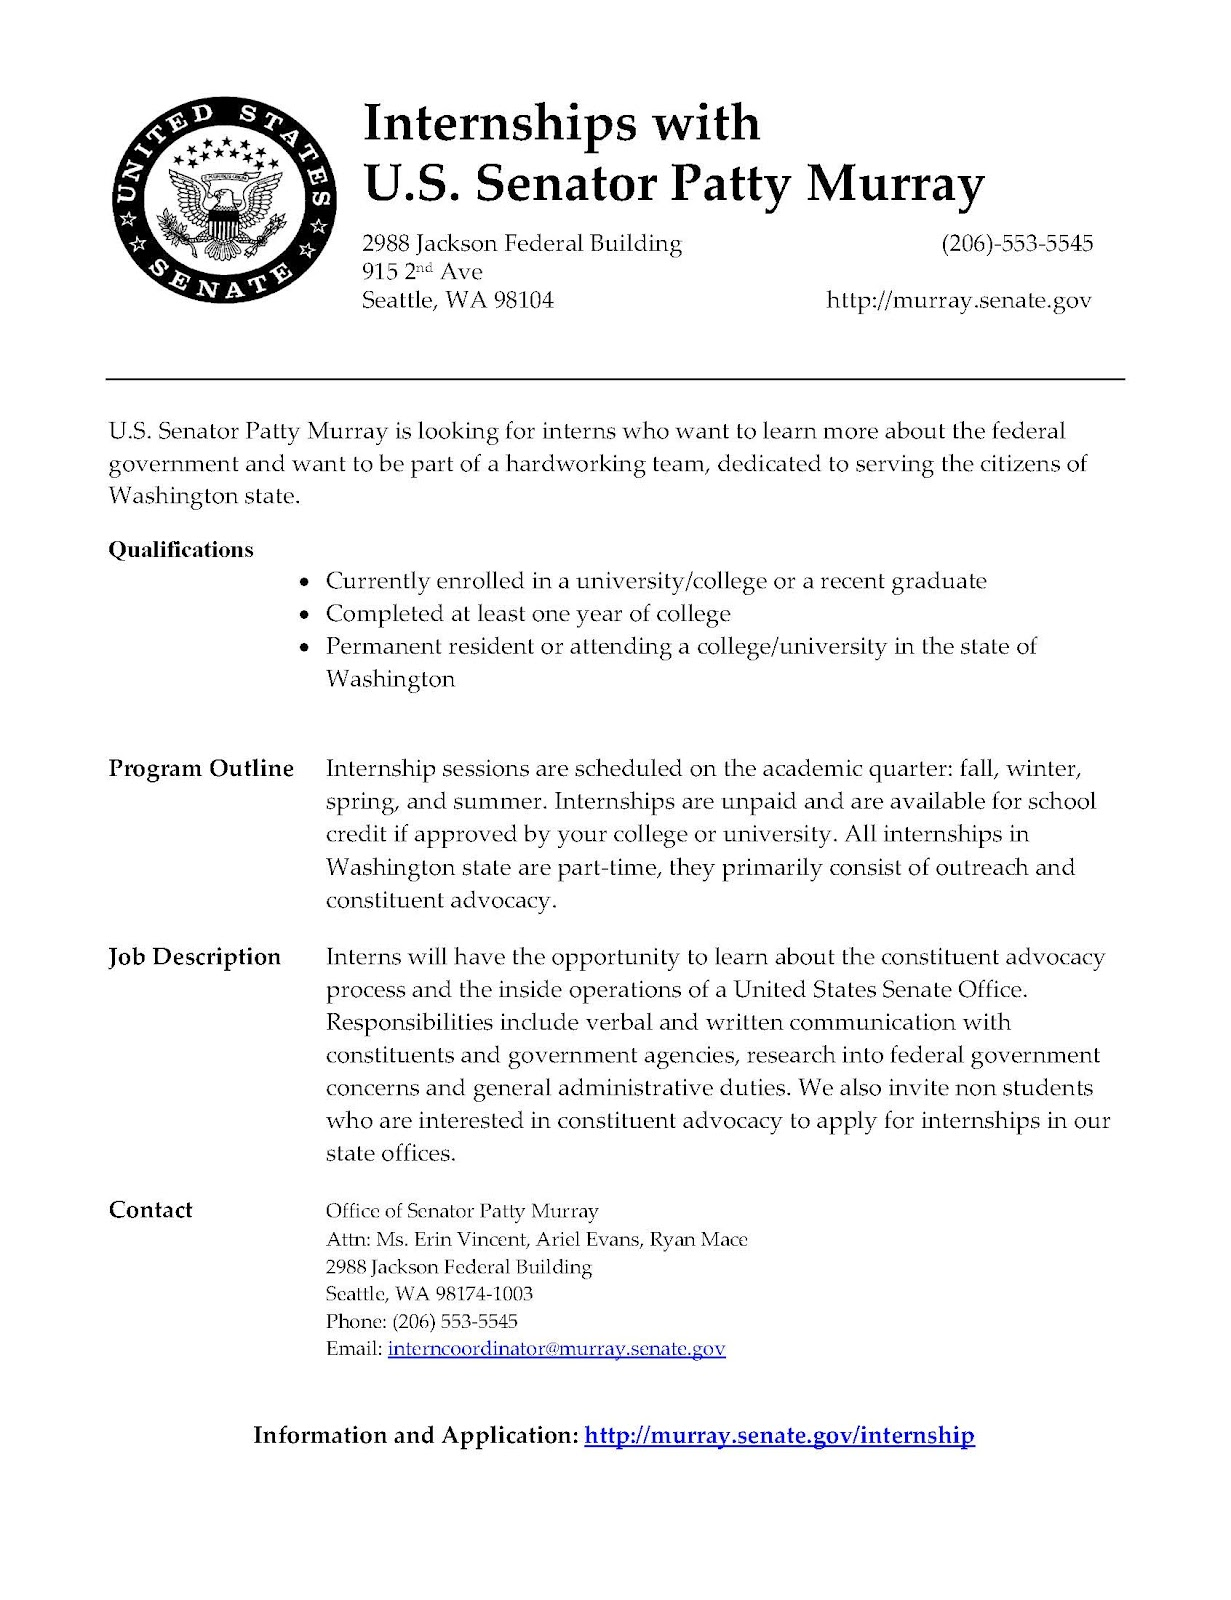 political internship cover letter - Etame.mibawa.co